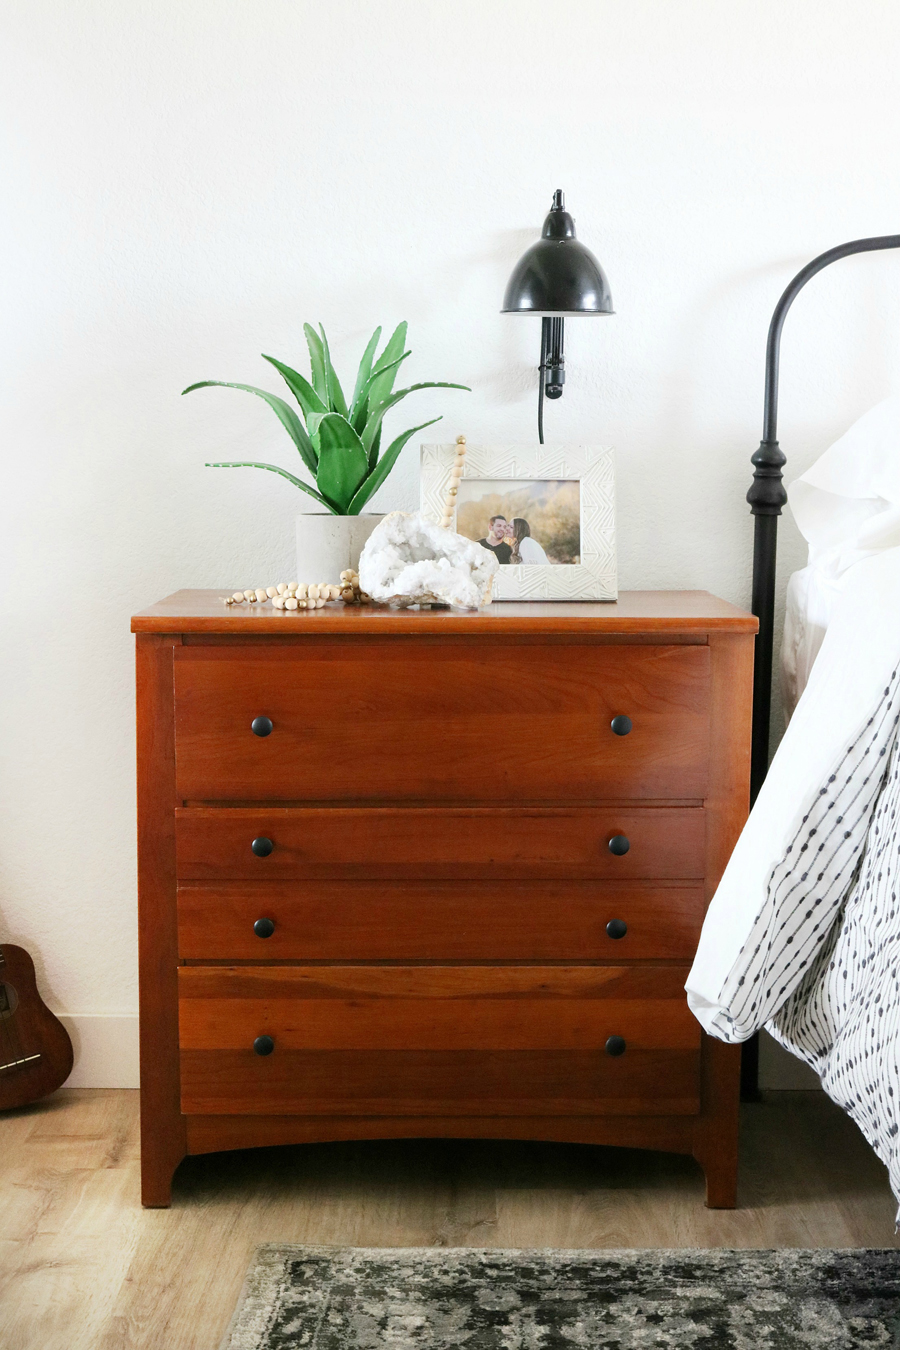 Boho Inspired Bedroom Nightstand Decor with Wall Sconce